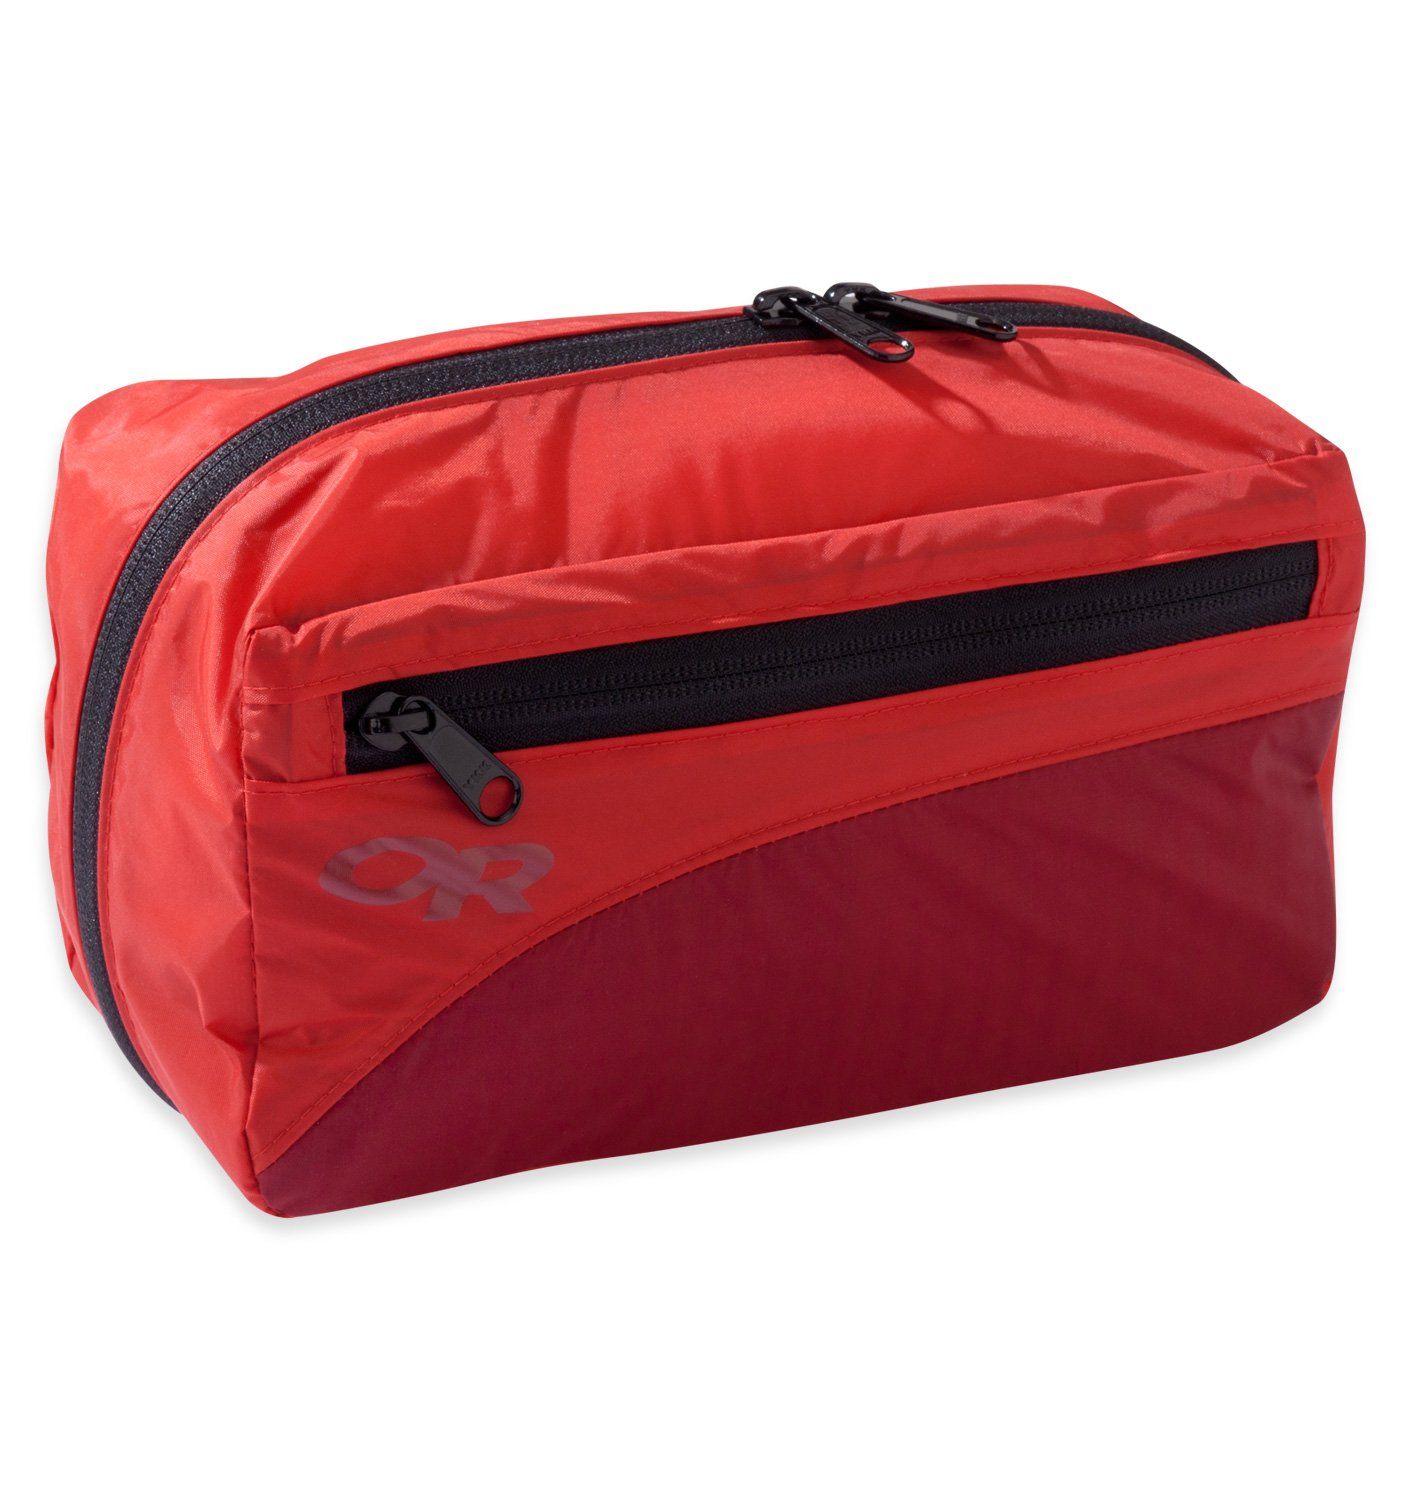 Outdoor Research Backcountry Organizer #2, Hot Sauce/Agate, 1size